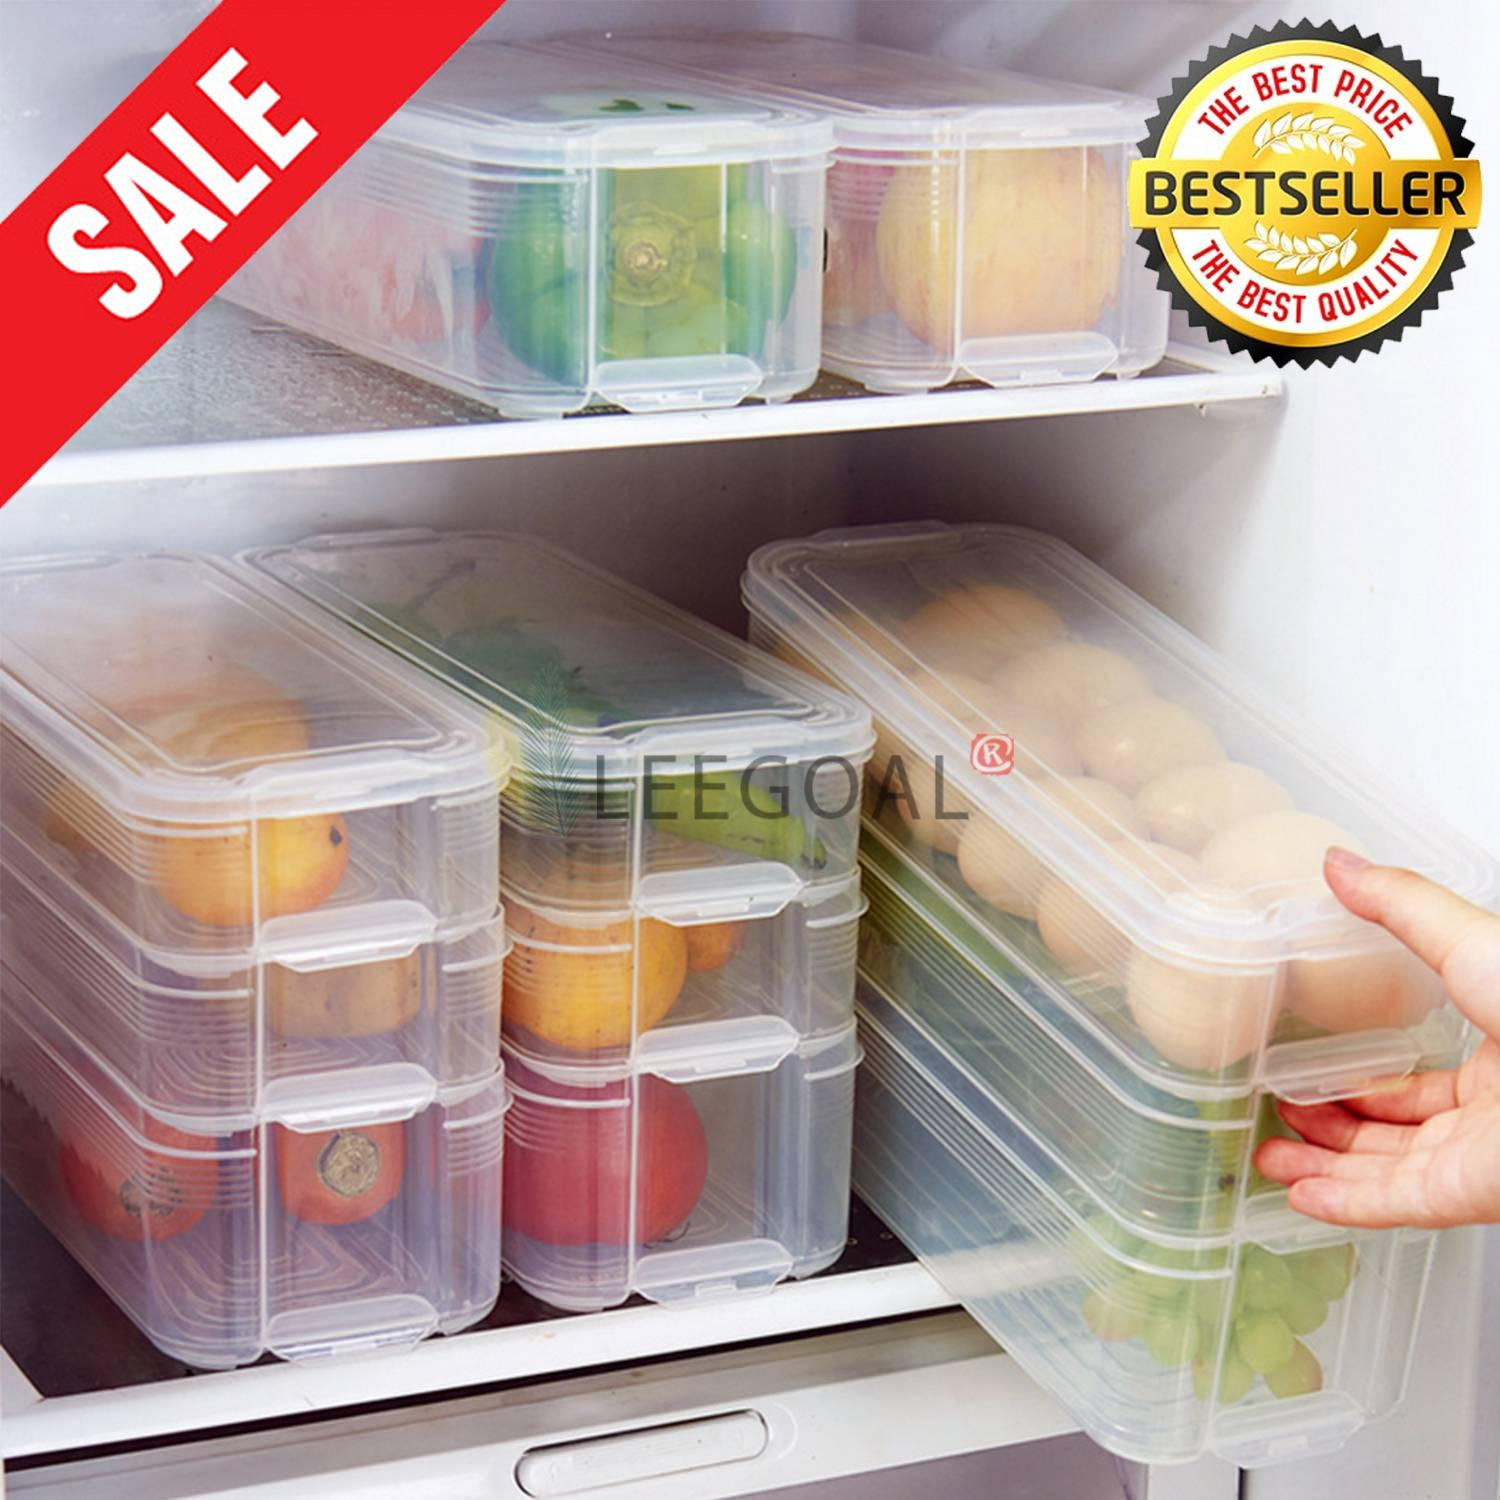 kitchen appliance storage innovative leegoal plastic storage bins refrigerator boxfood containers with lid for kitchen buy latest dining products lazada